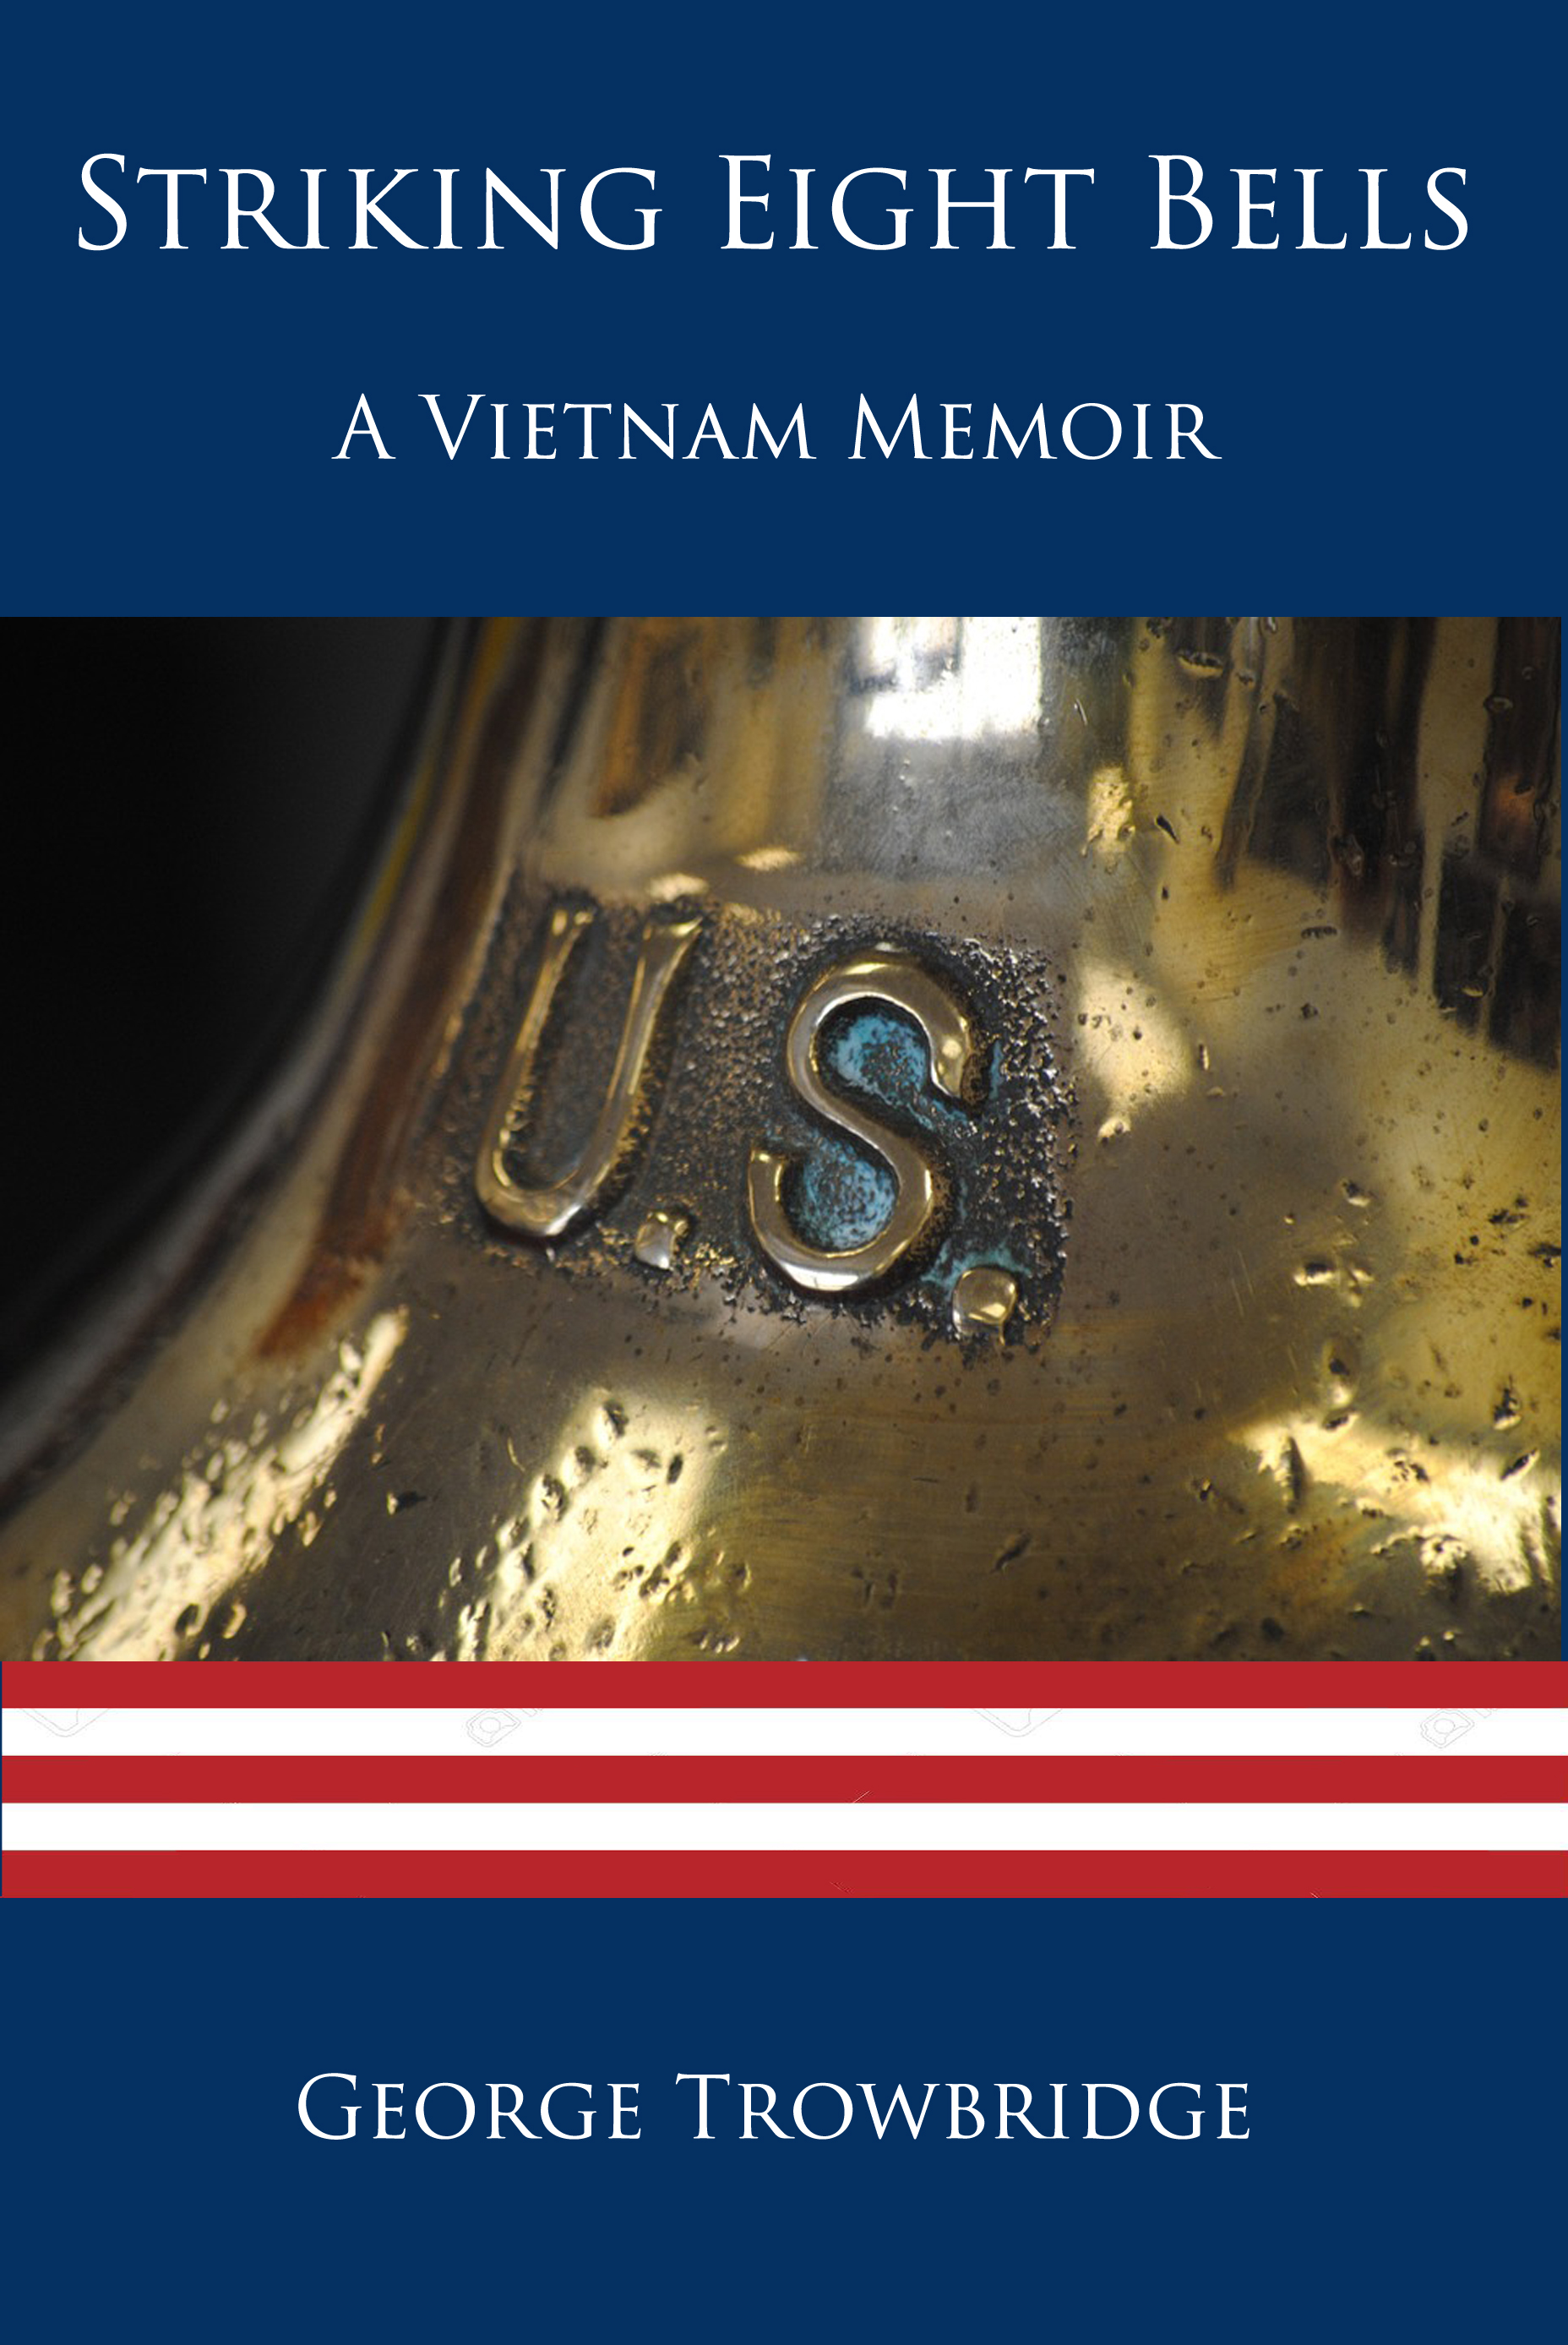 Striking Eight Bells: A Vietnam Memoir, an Ebook by George Trowbridge